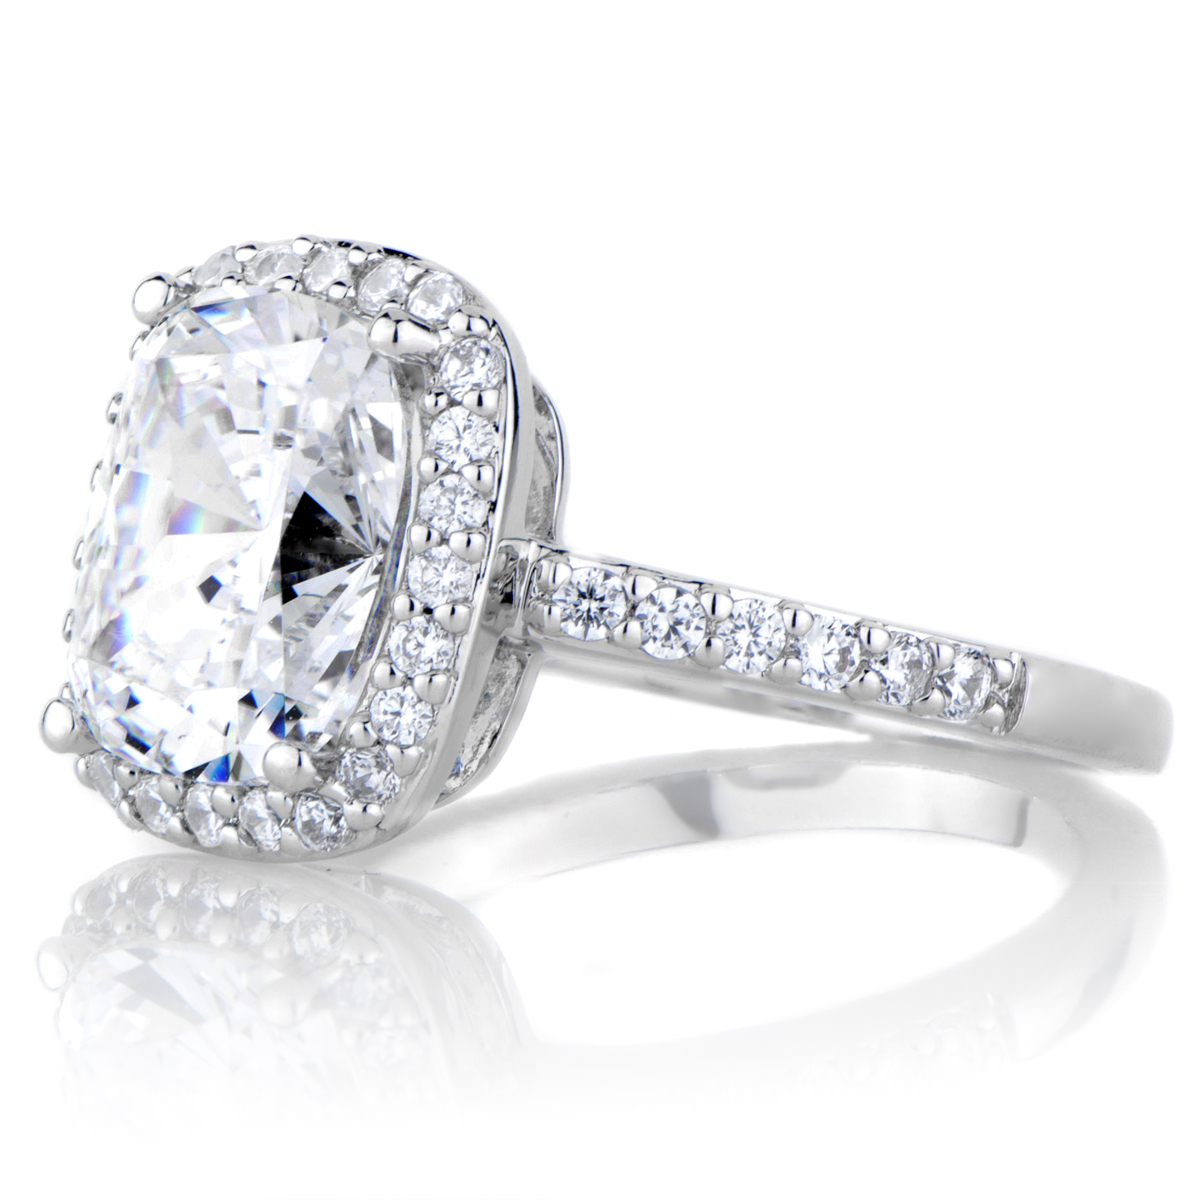 Amerie s 2 5 Carat Cushion Cut Halo Engagement Ring